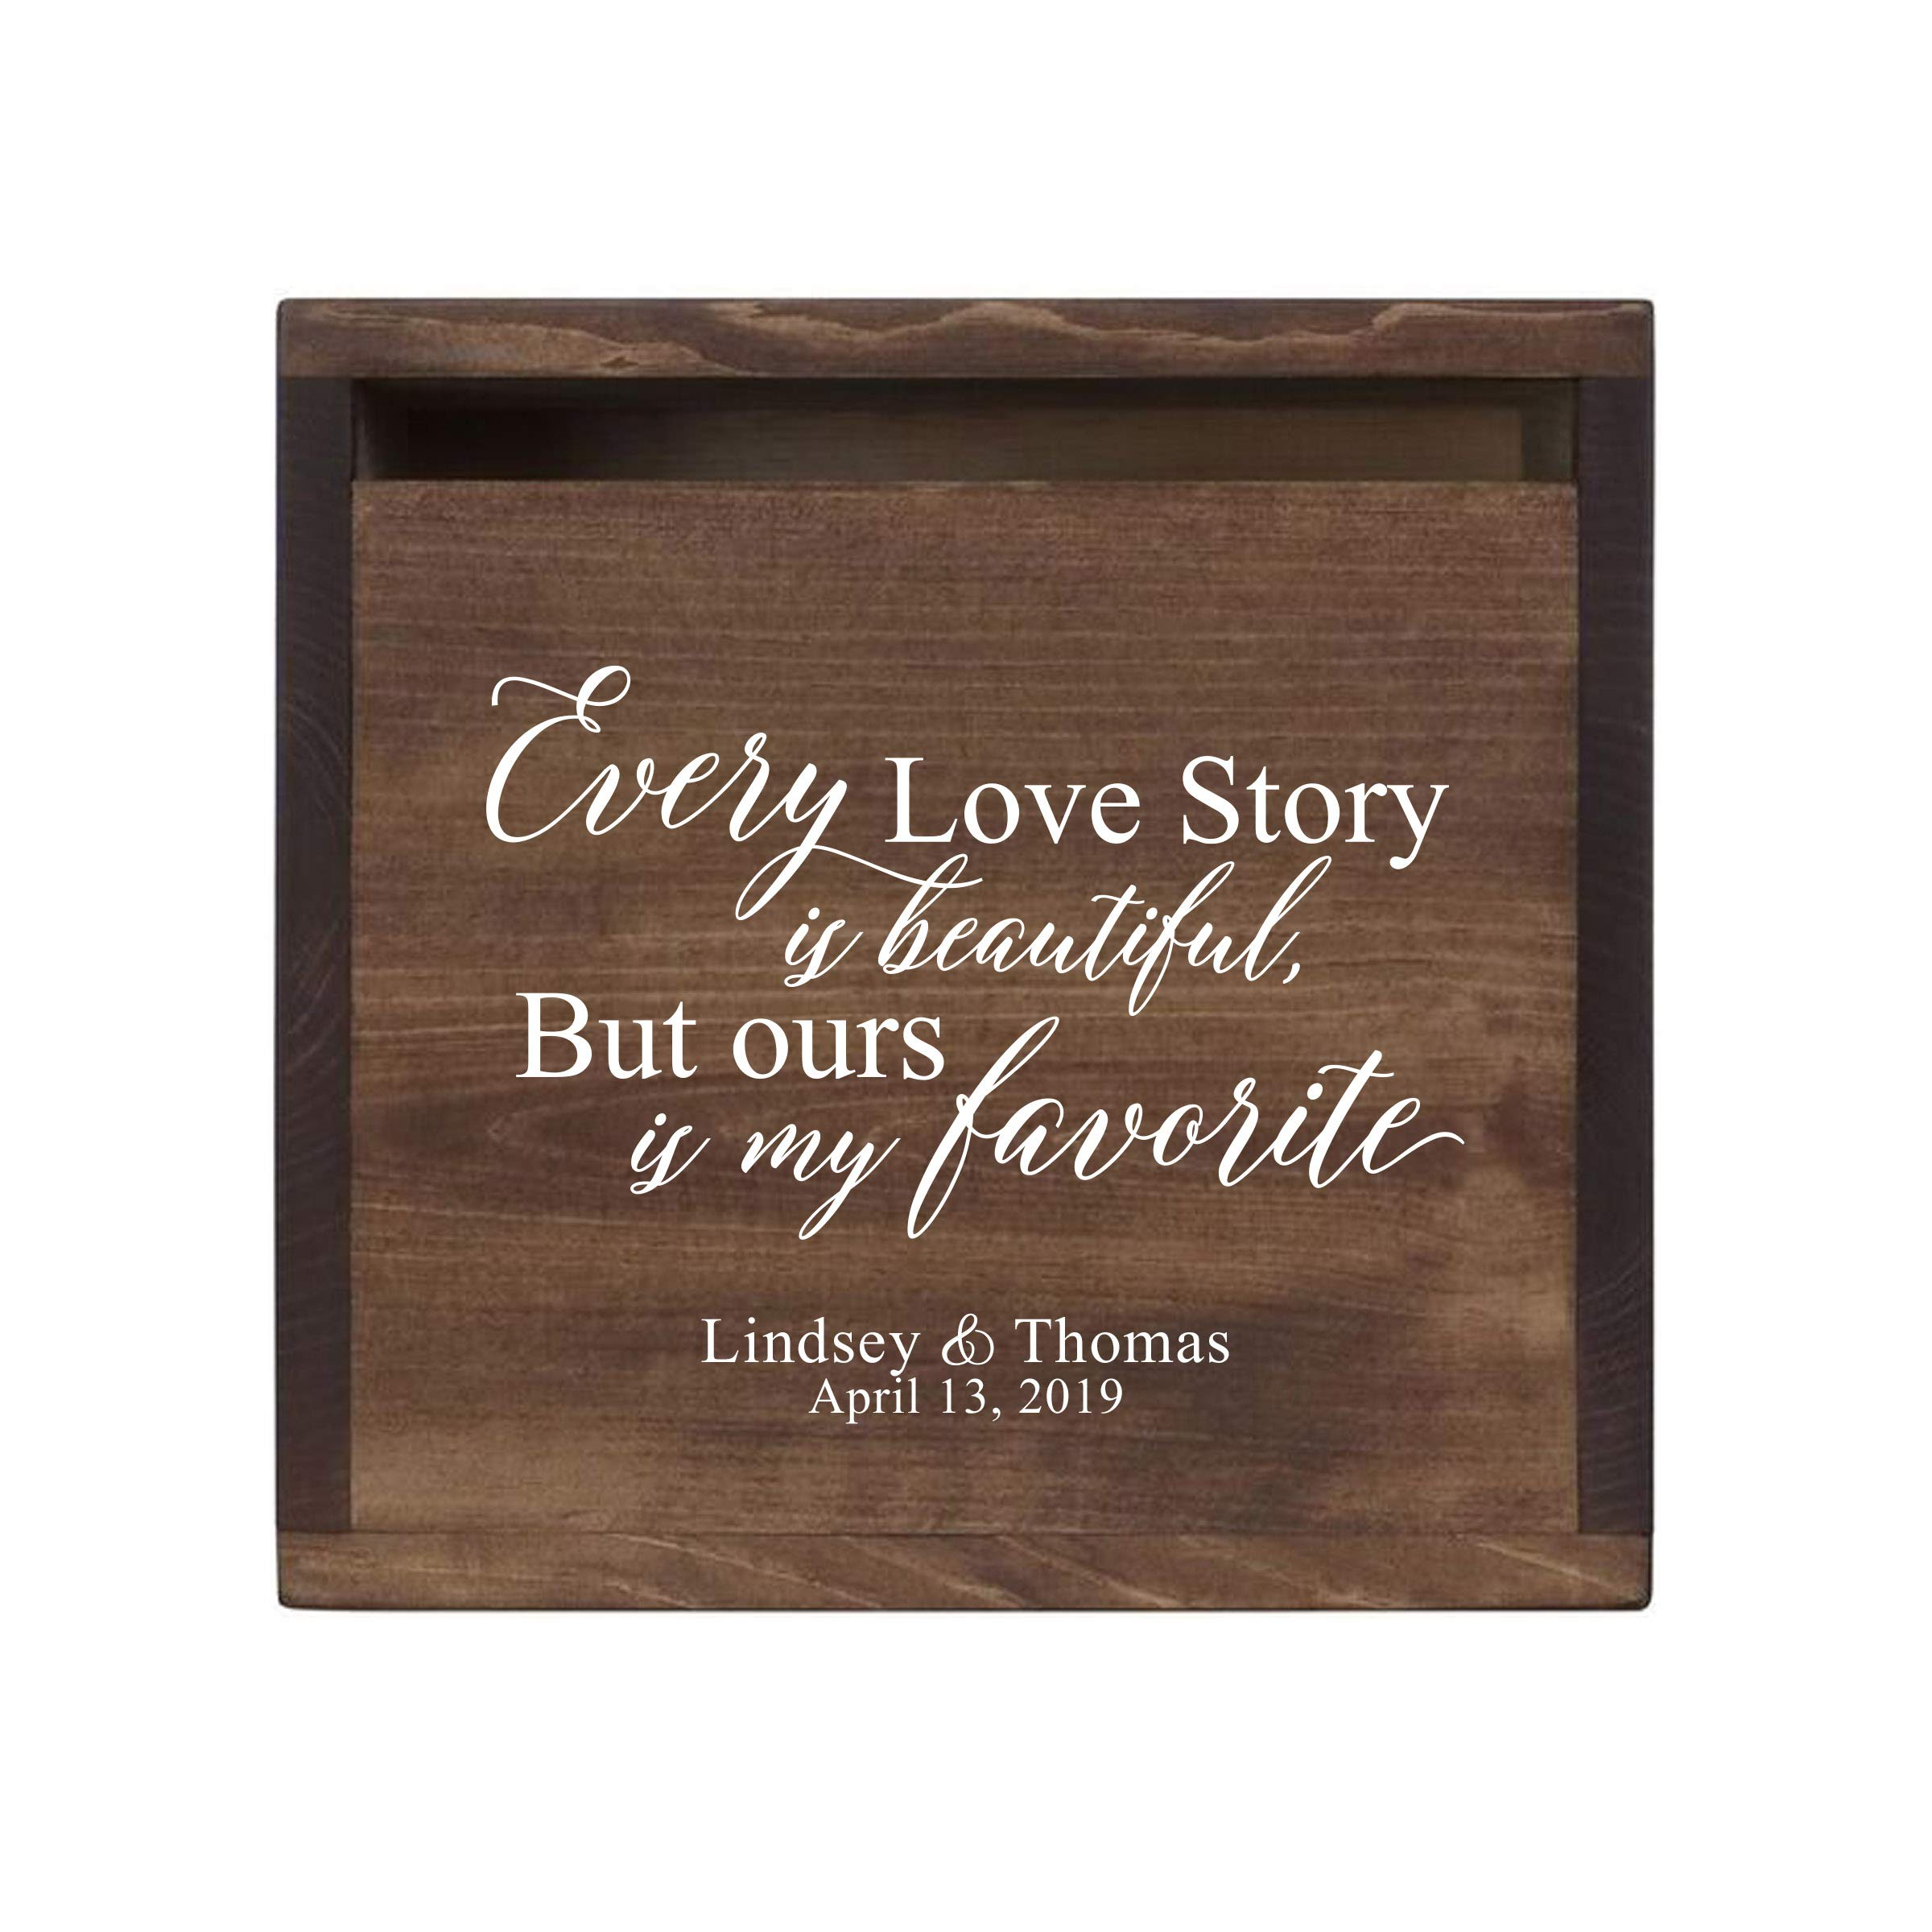 """LifeSong Milestones Personalized Every Love Story Rustic Wooden Wedding Card Box Custom Card Holder with Front Slot for Newlyweds Couples Reception 13.5"""" L x 12"""" W x 12.5"""" T (Walnut)"""